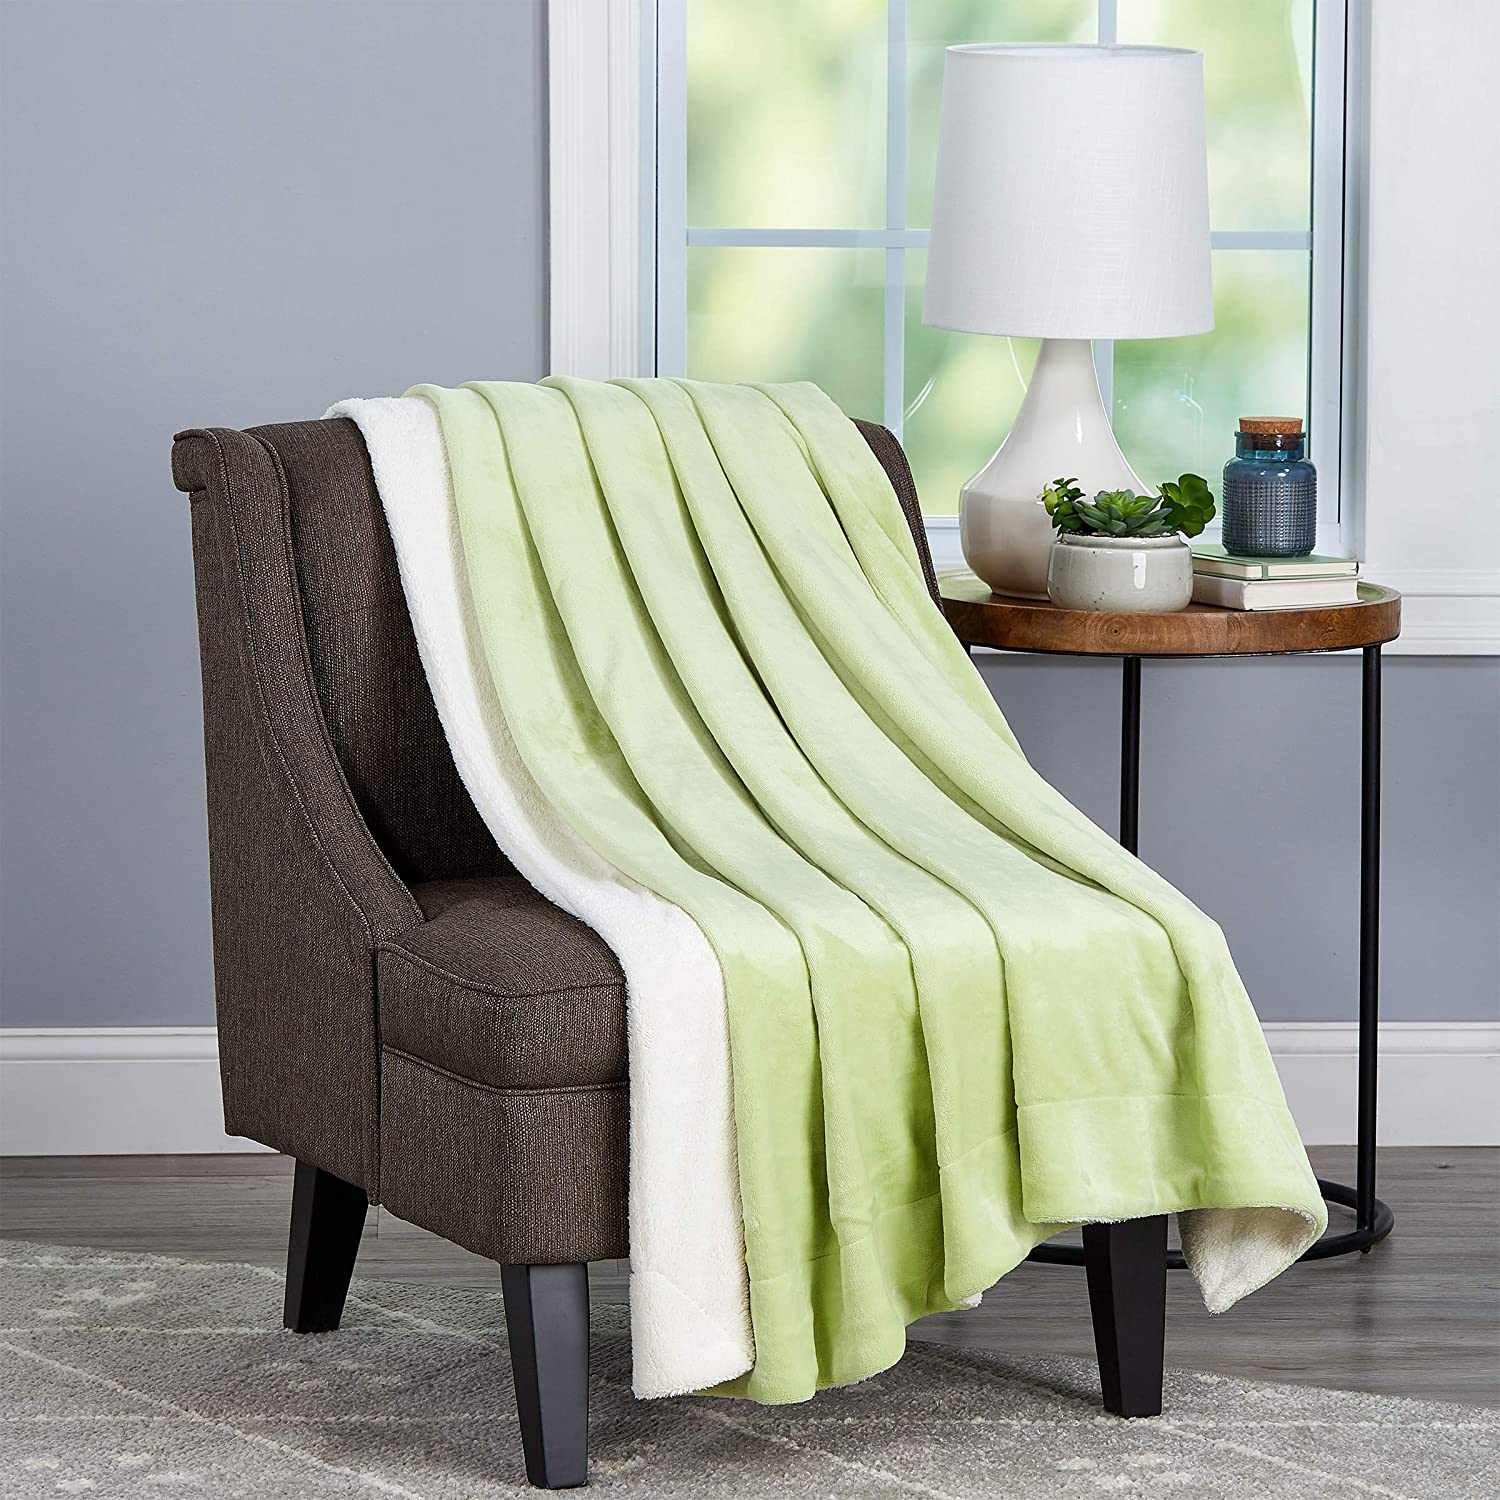 """Bedford Home Aloe Green and White Poly Oversized Plush Woven Polyester Sherpa Fleece Solid Color Throw – Breathable and Machine Washable, 70"""" L x 60"""" W"""